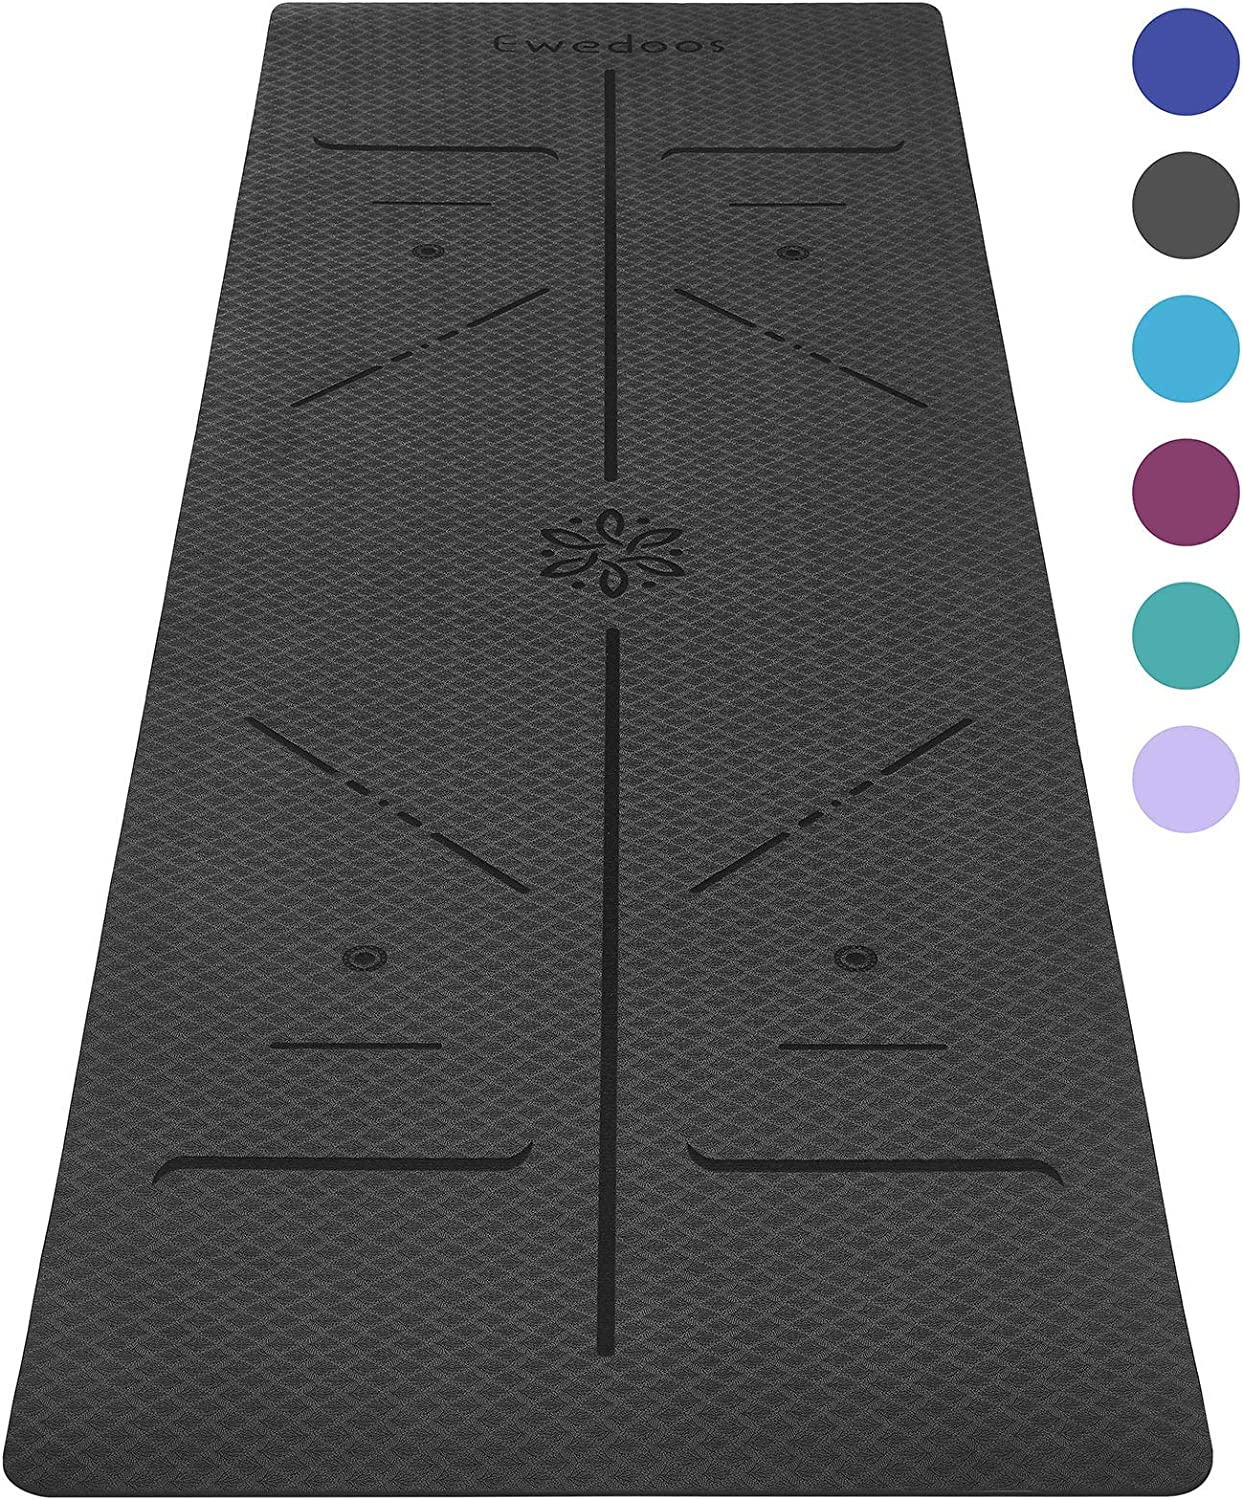 Pilates and Fitness TPE Yoga Mat Non Slip Textured Surfaces /¼-Inch Thick High Density Padding to Avoid Sore Knees Perfect for Yoga Ewedoos Eco Friendly Yoga Mat with Alignment Lines